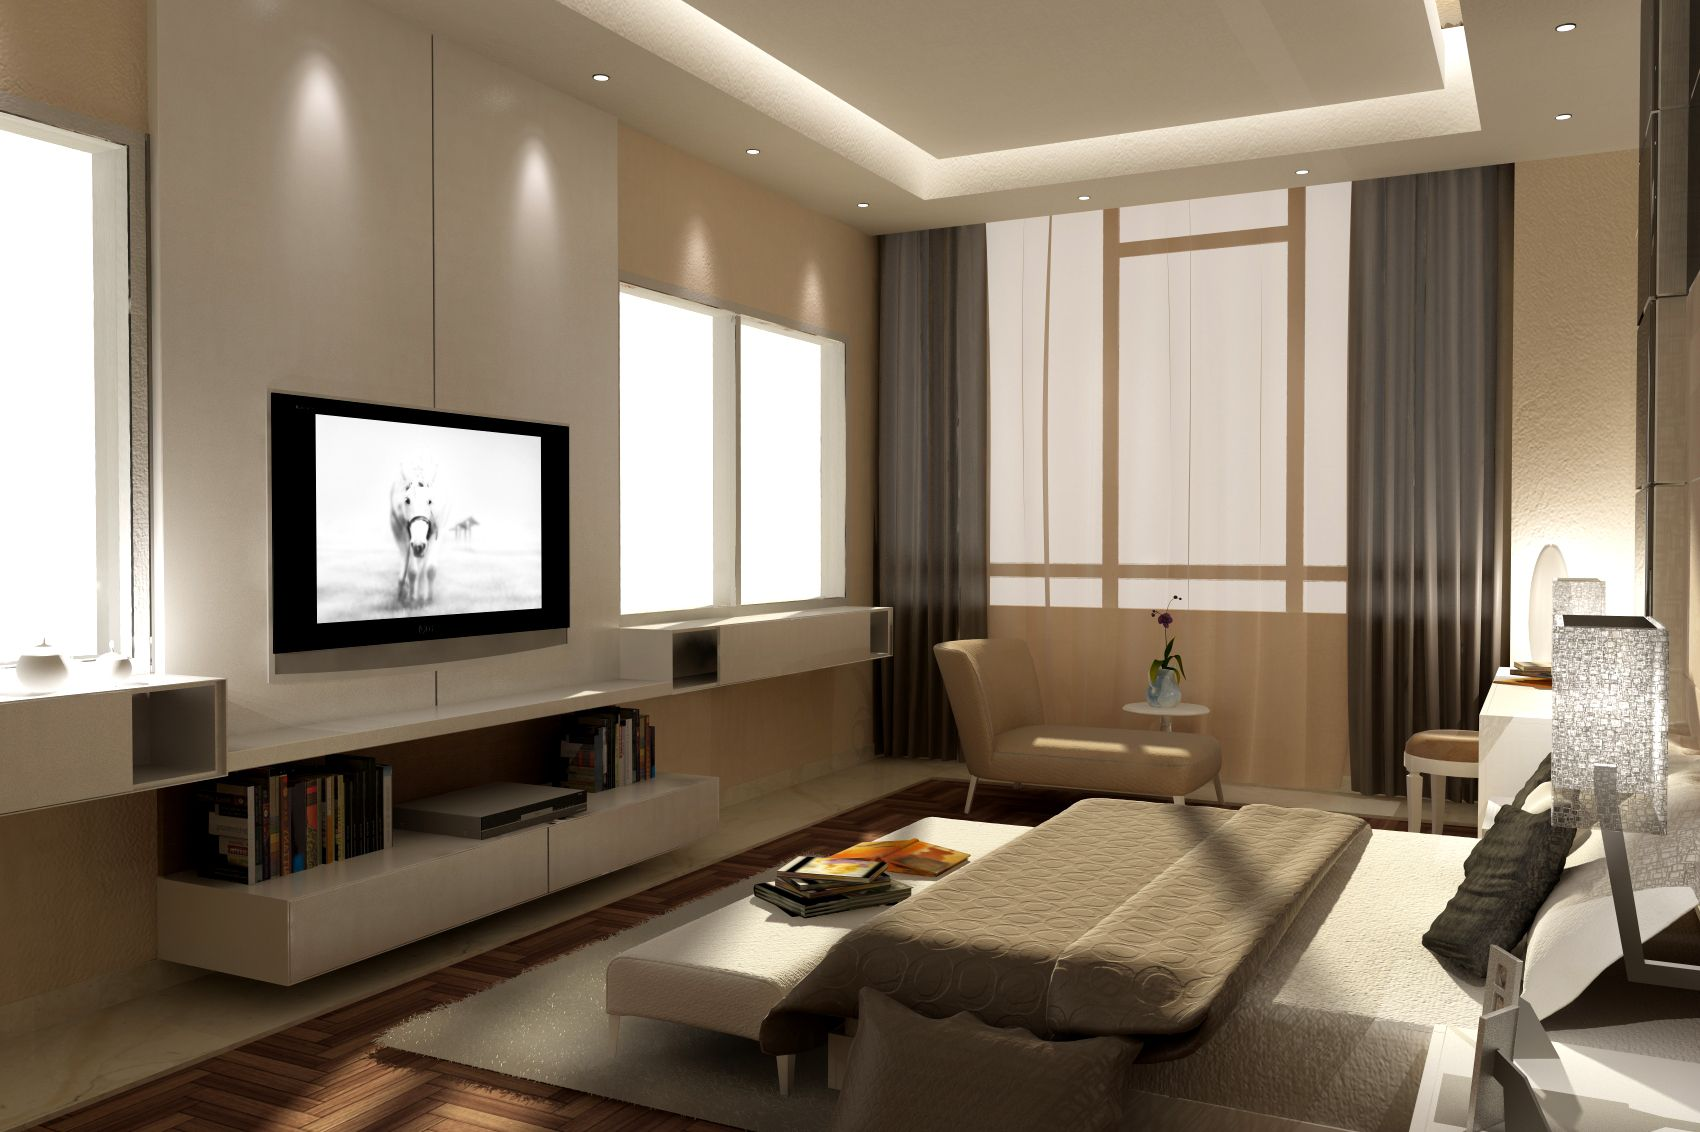 Bedroom modern bedroom interior design 3d max 3d for Bedroom contemporary interior design